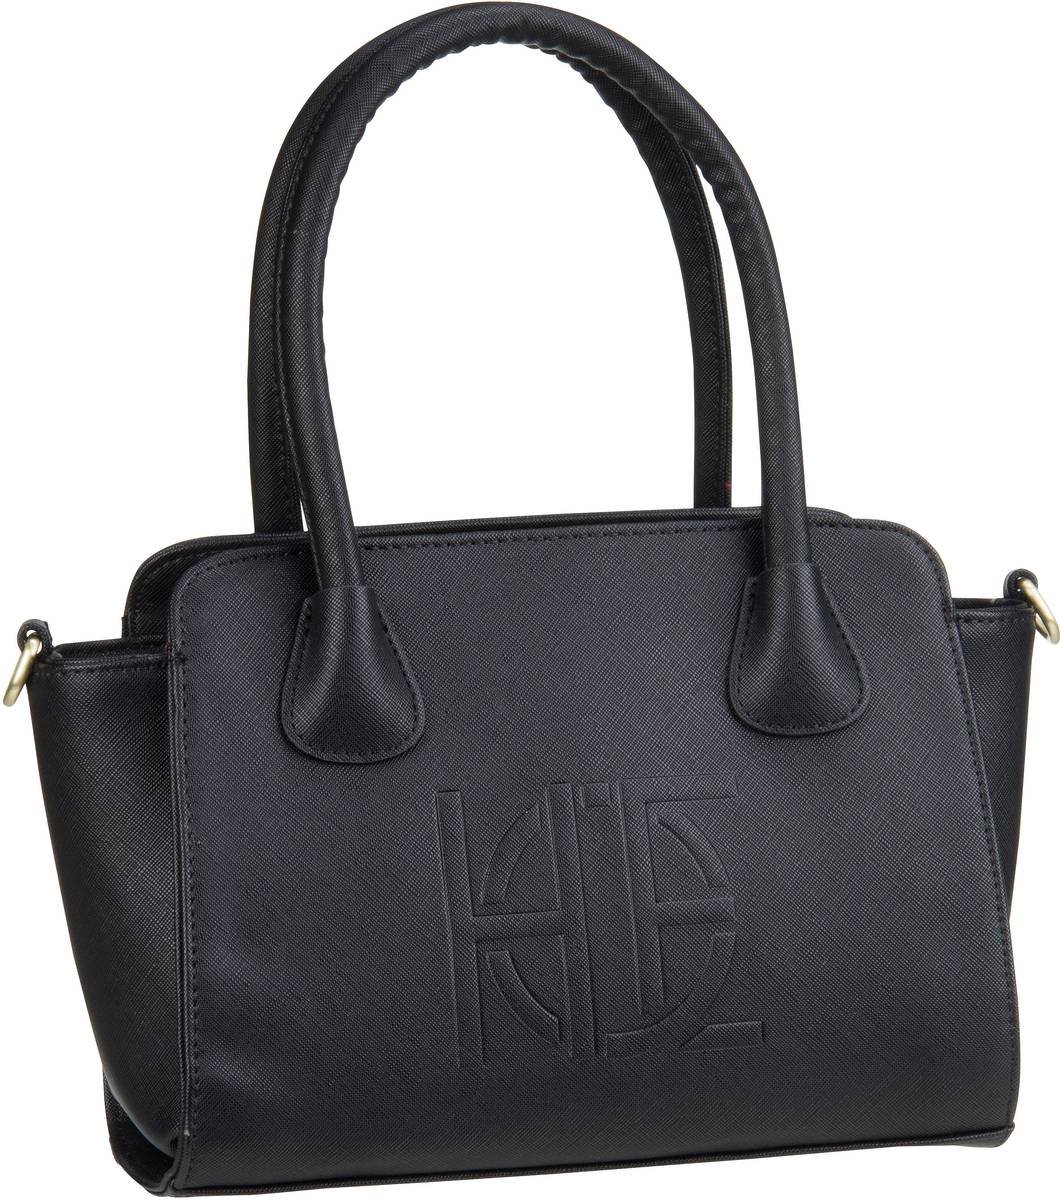 House of Envy Proud Bag Black - Handtasche